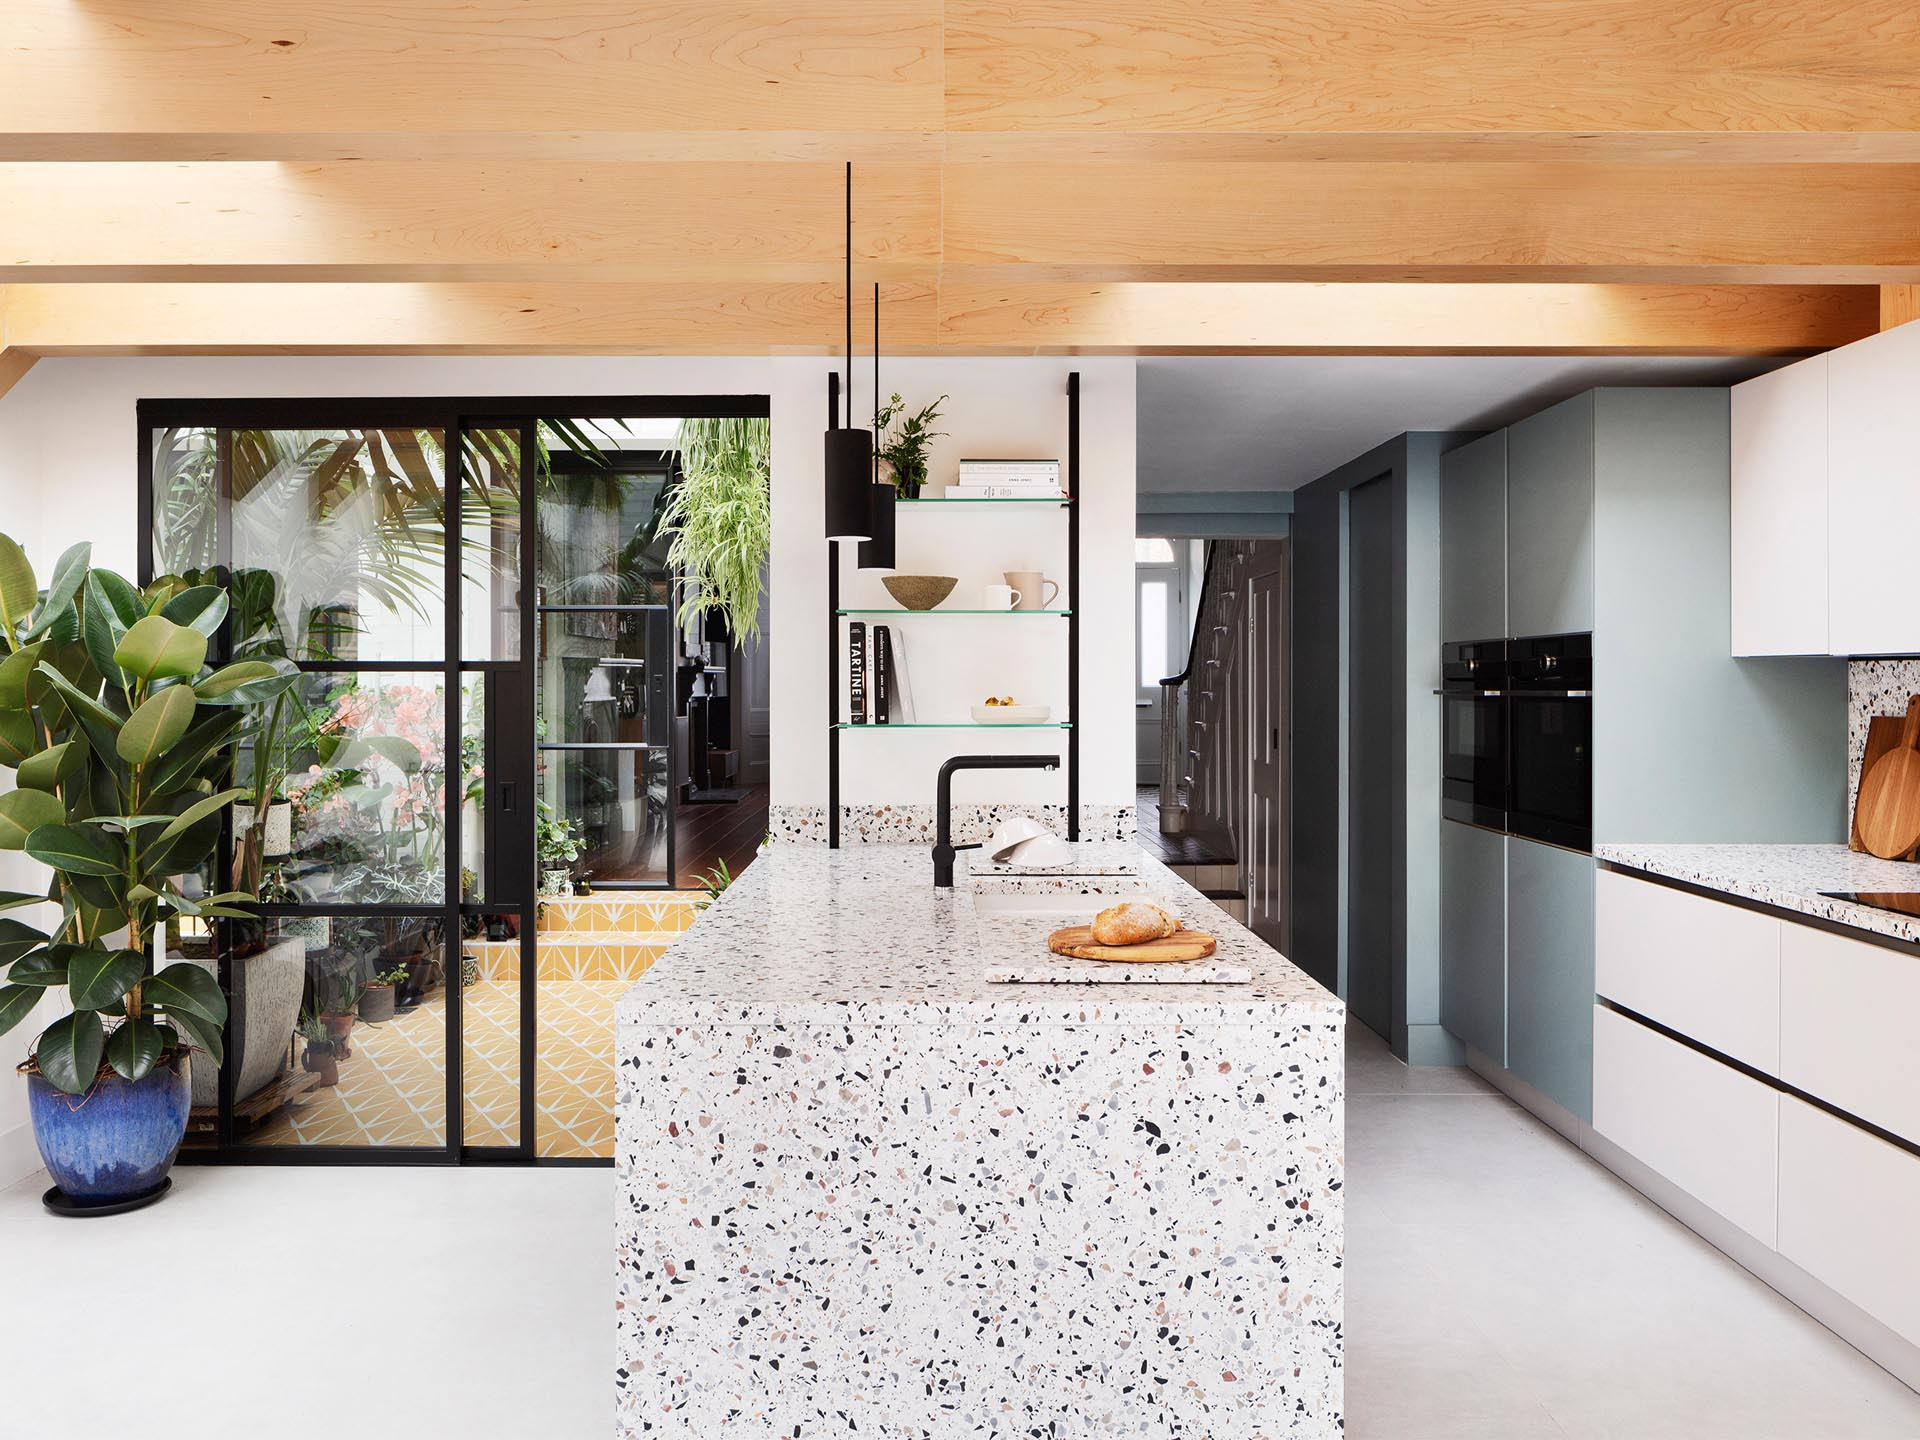 The warmth of the wood beams is mirrored in the neutral tones of the terrazzo that covers the kitchen island and countertops below, and in the muted green paintwork of cabinetry.